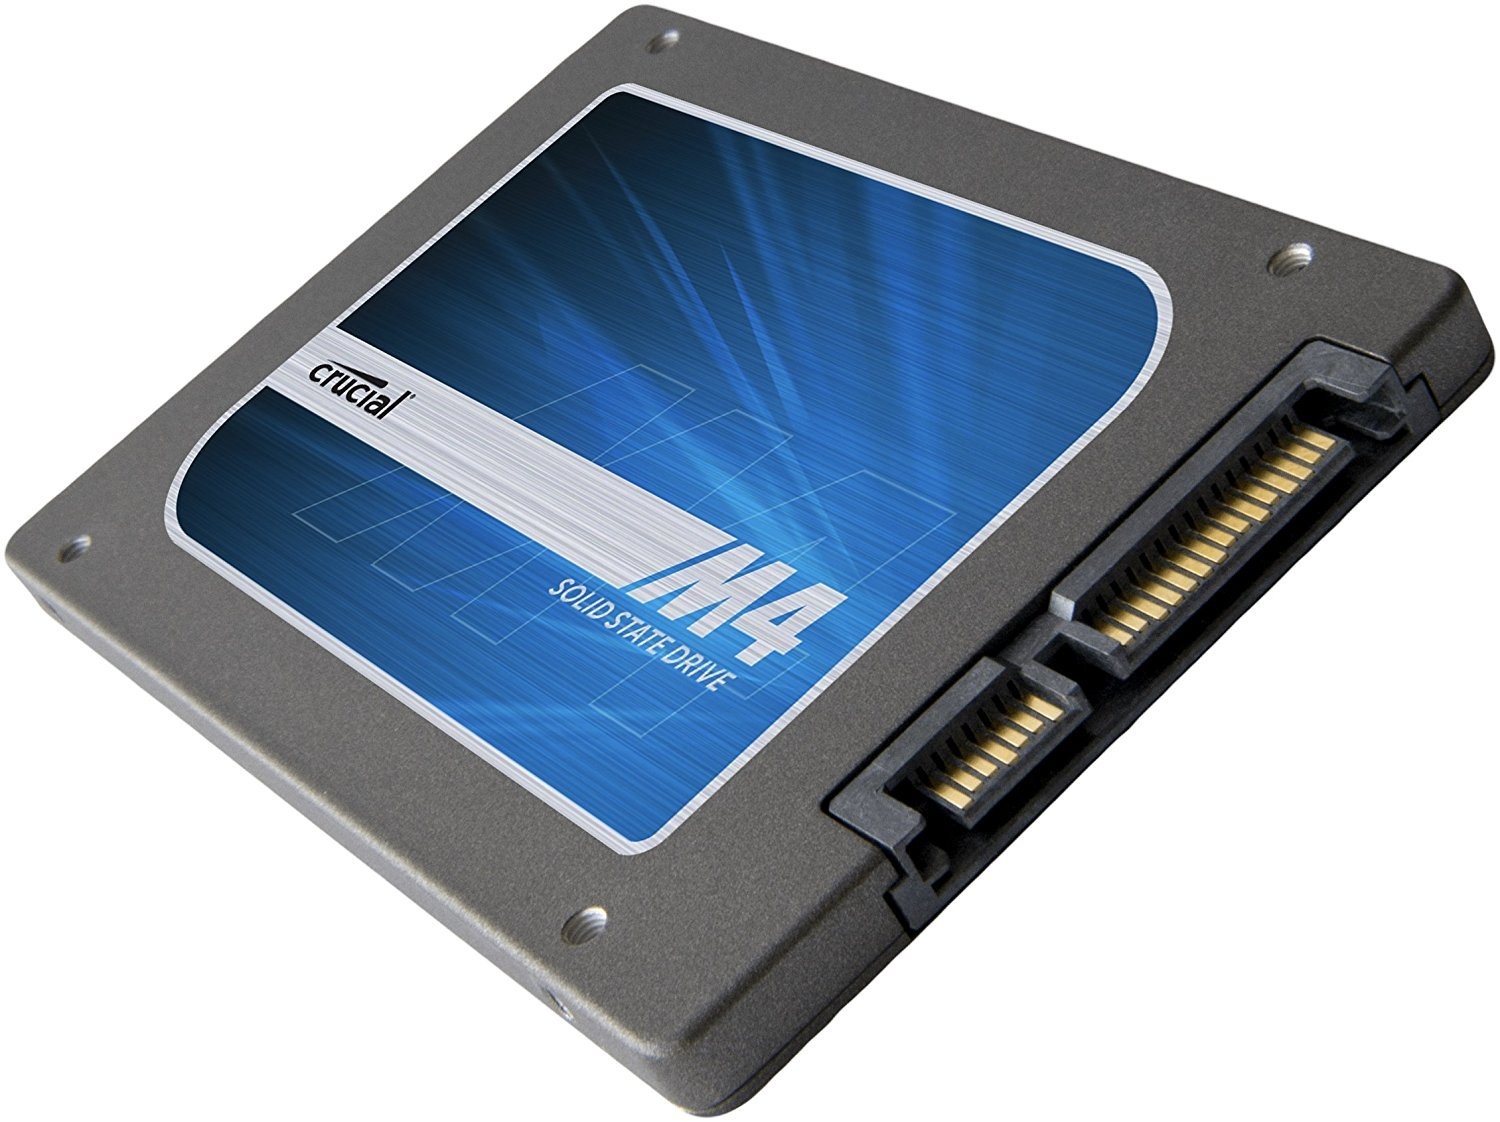 SSD Computer